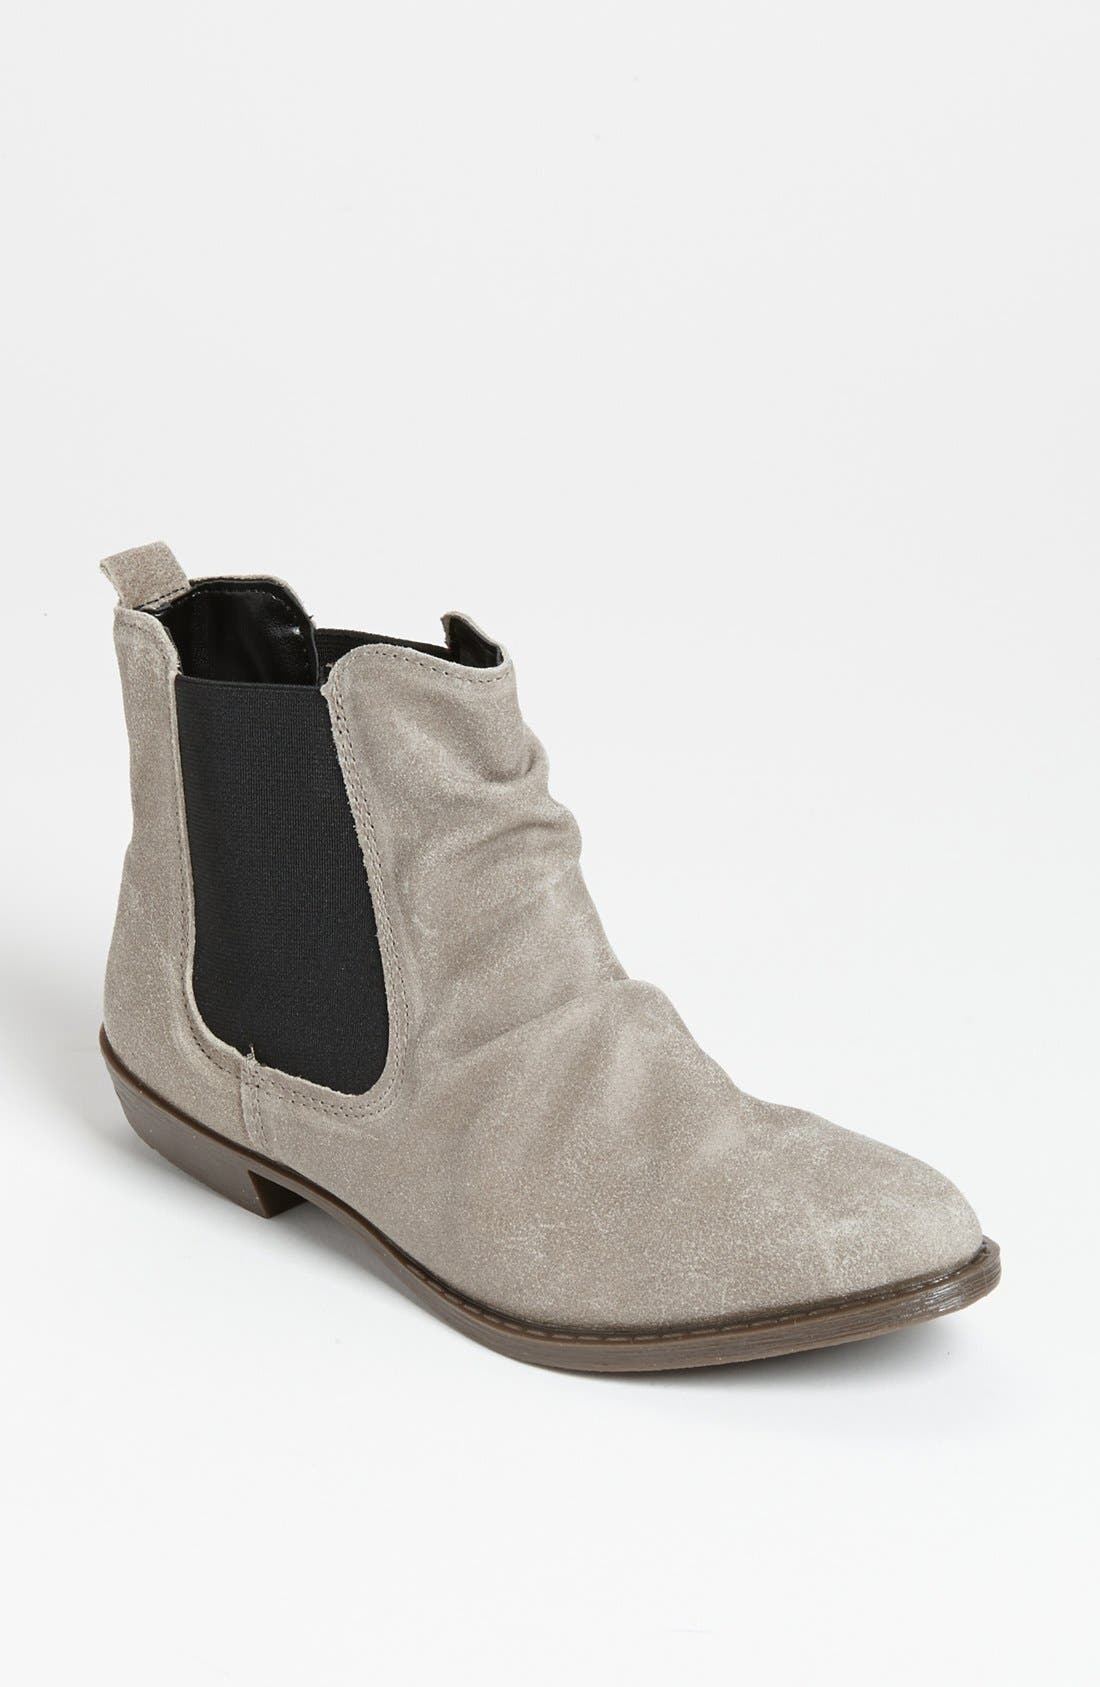 Alternate Image 1 Selected - Topshop 'Marco' Chelsea Boot